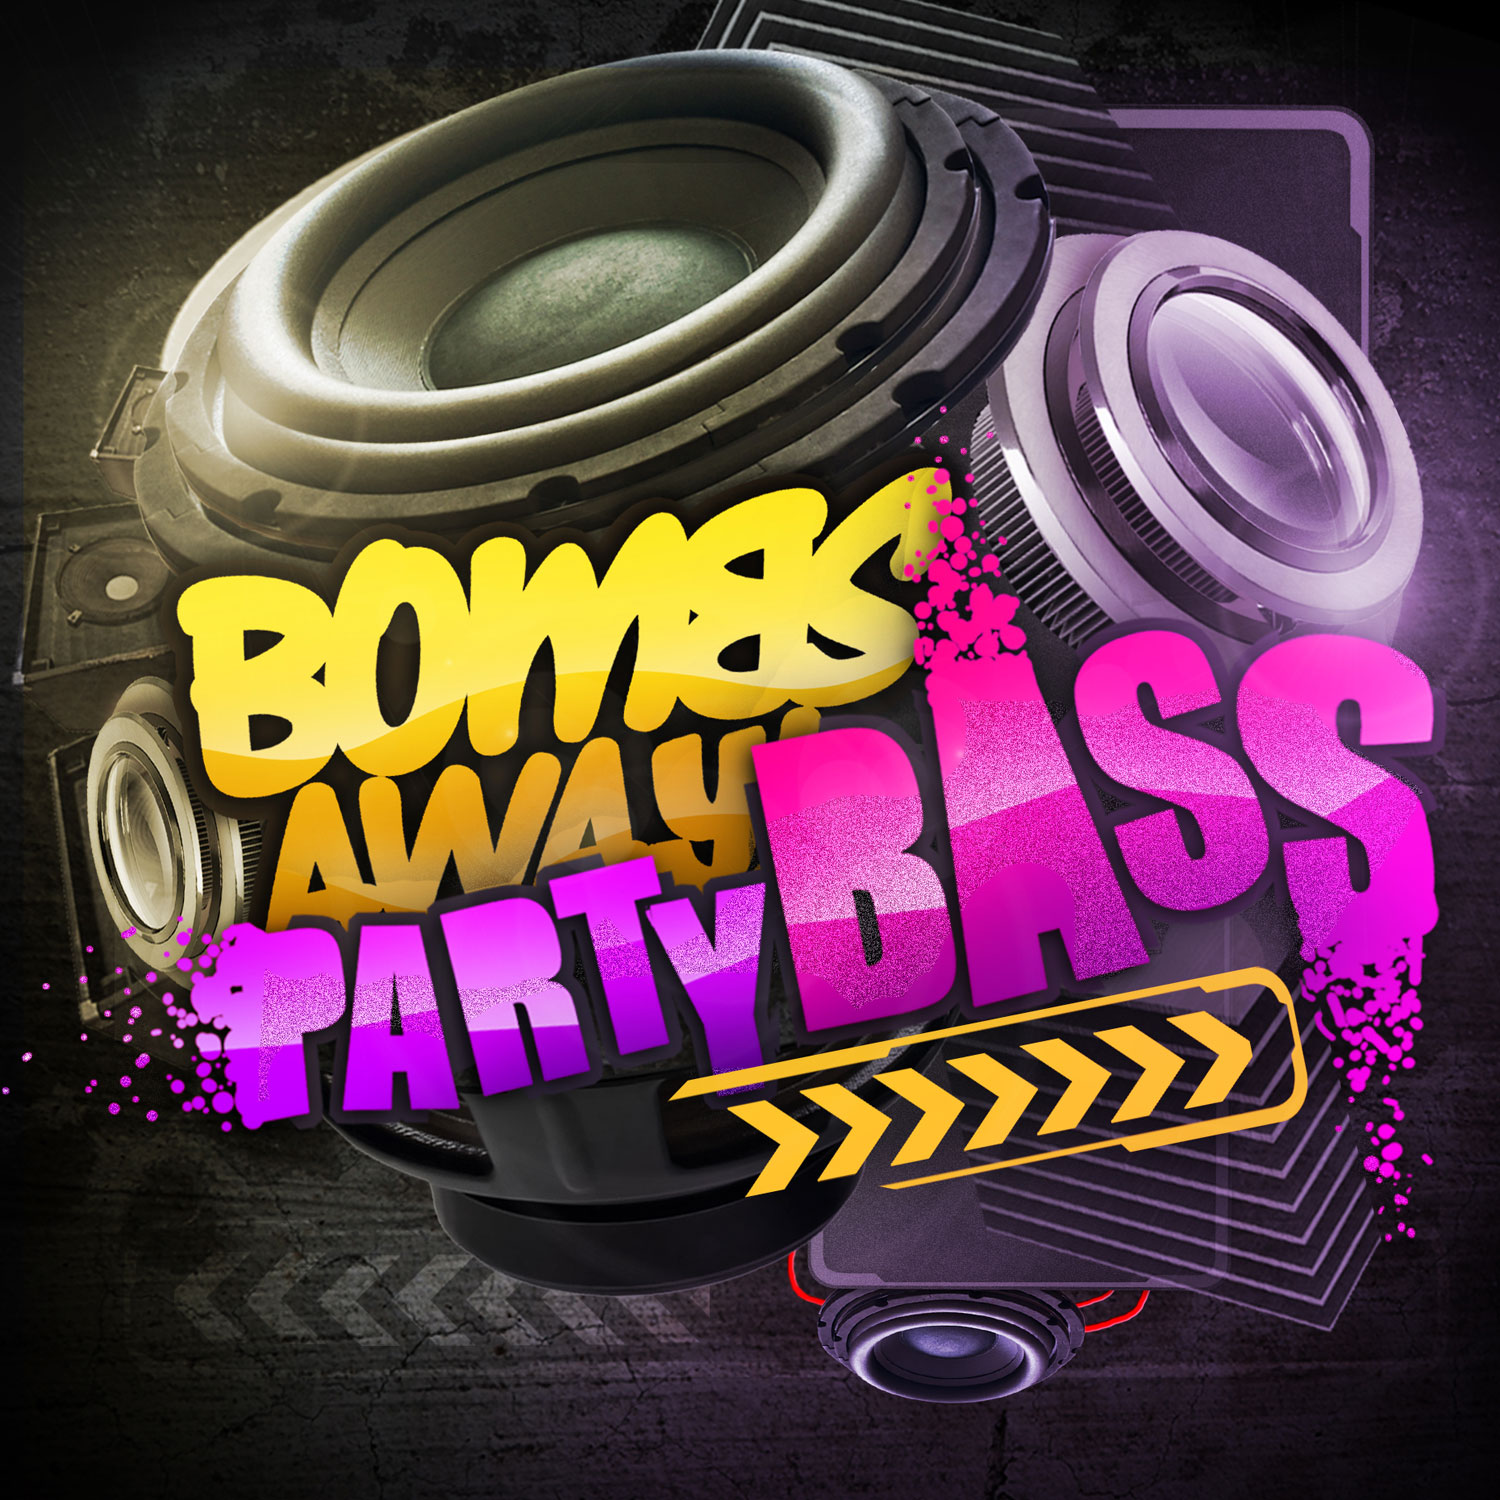 Bombs Away feat. The Twins - Party Bass